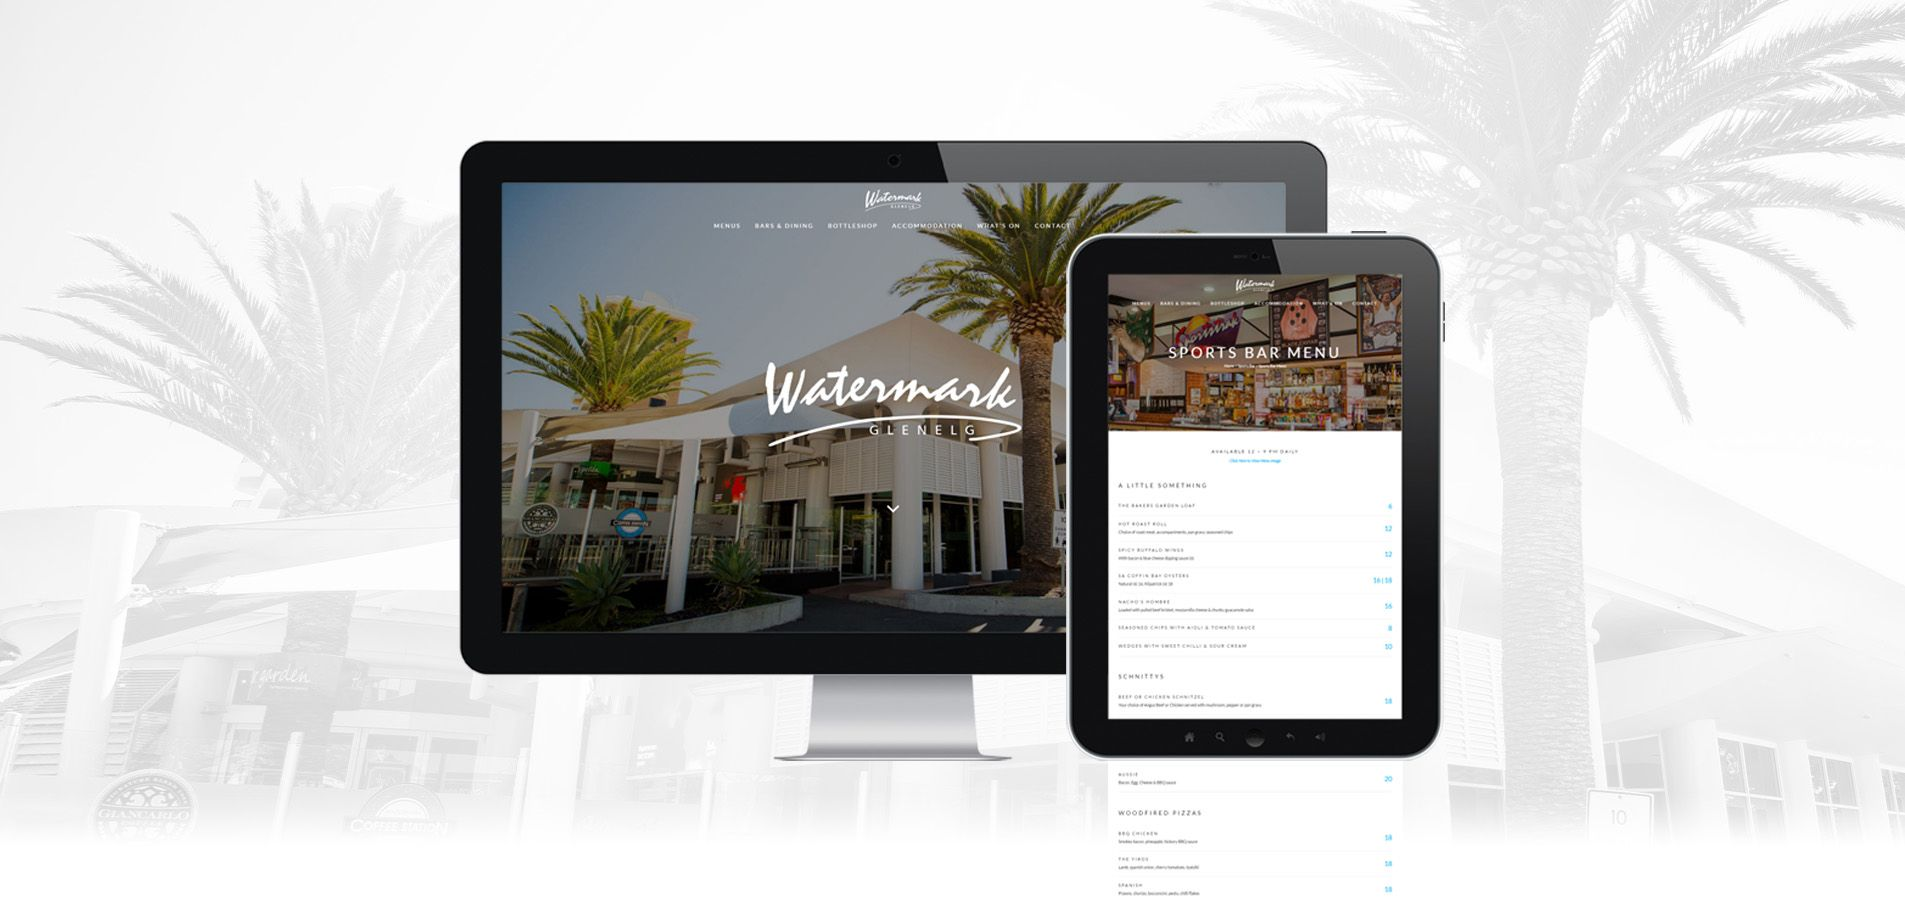 Desktop and tablet view of the Watermark Glenelg